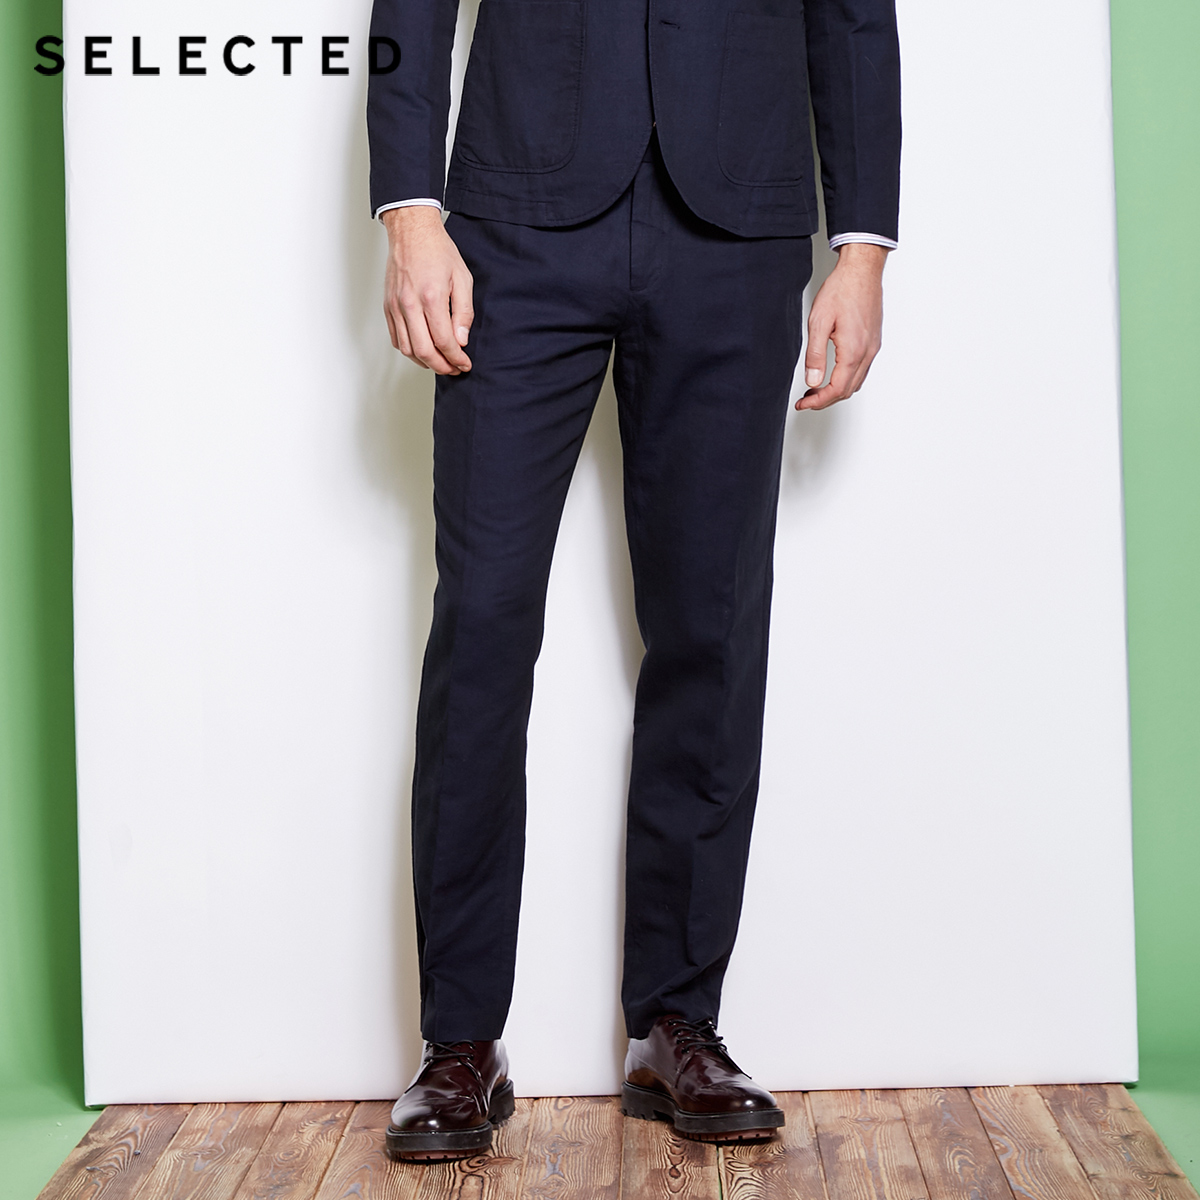 SELECTED Cotton linen blend business leisure suit pants S418218504-in Suit Pants from Men's Clothing    1